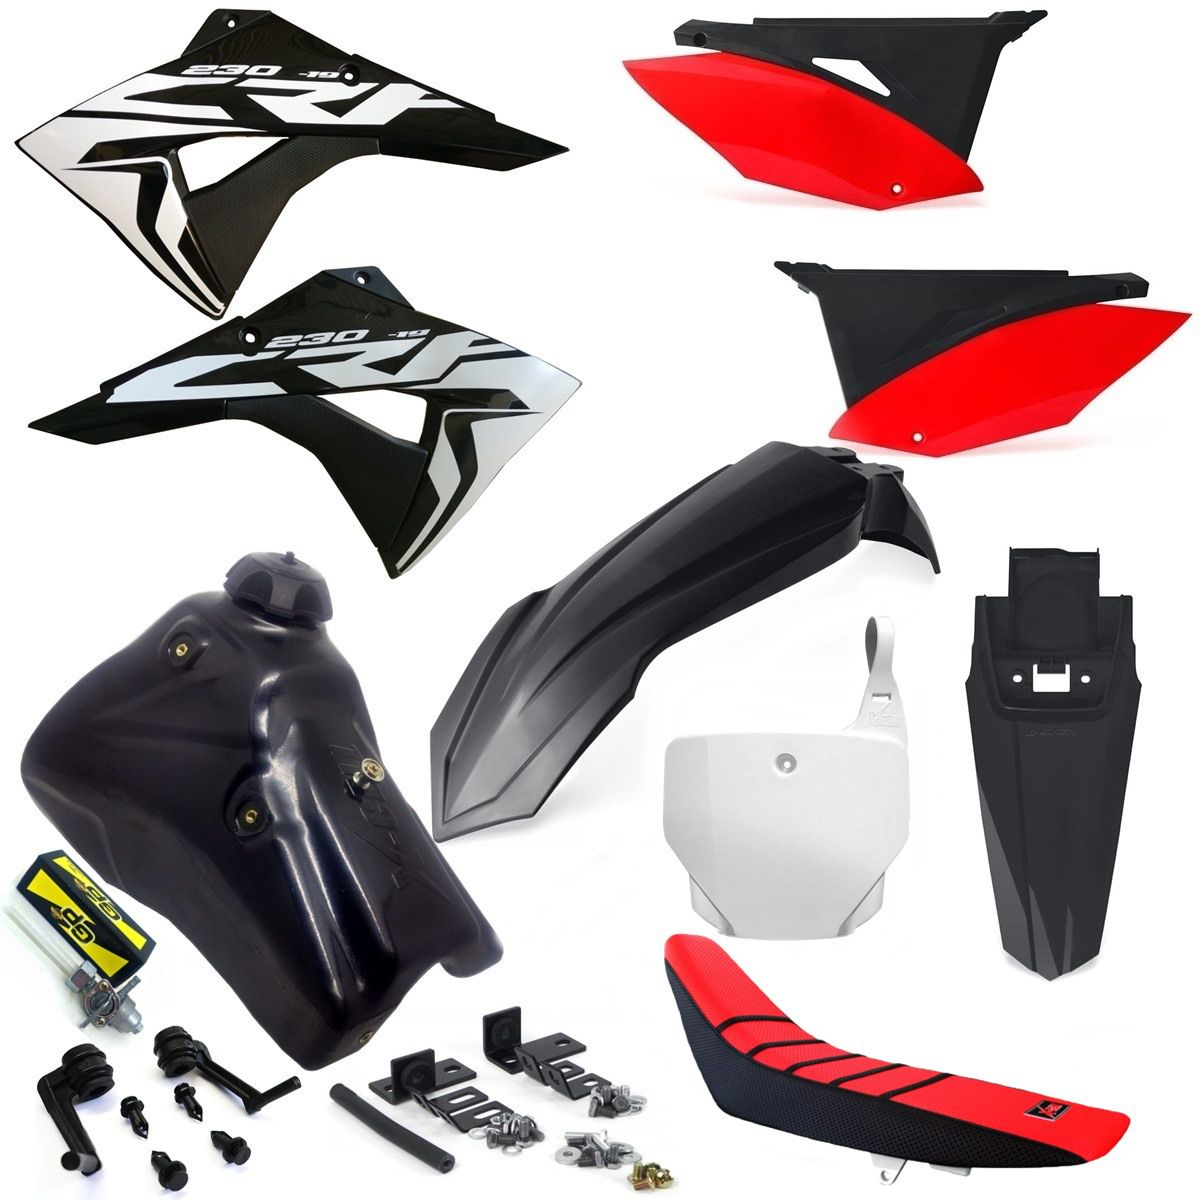 Kit Plástico Number X cell Crf 230 07... Tanque 7 Litros Torneira Gp